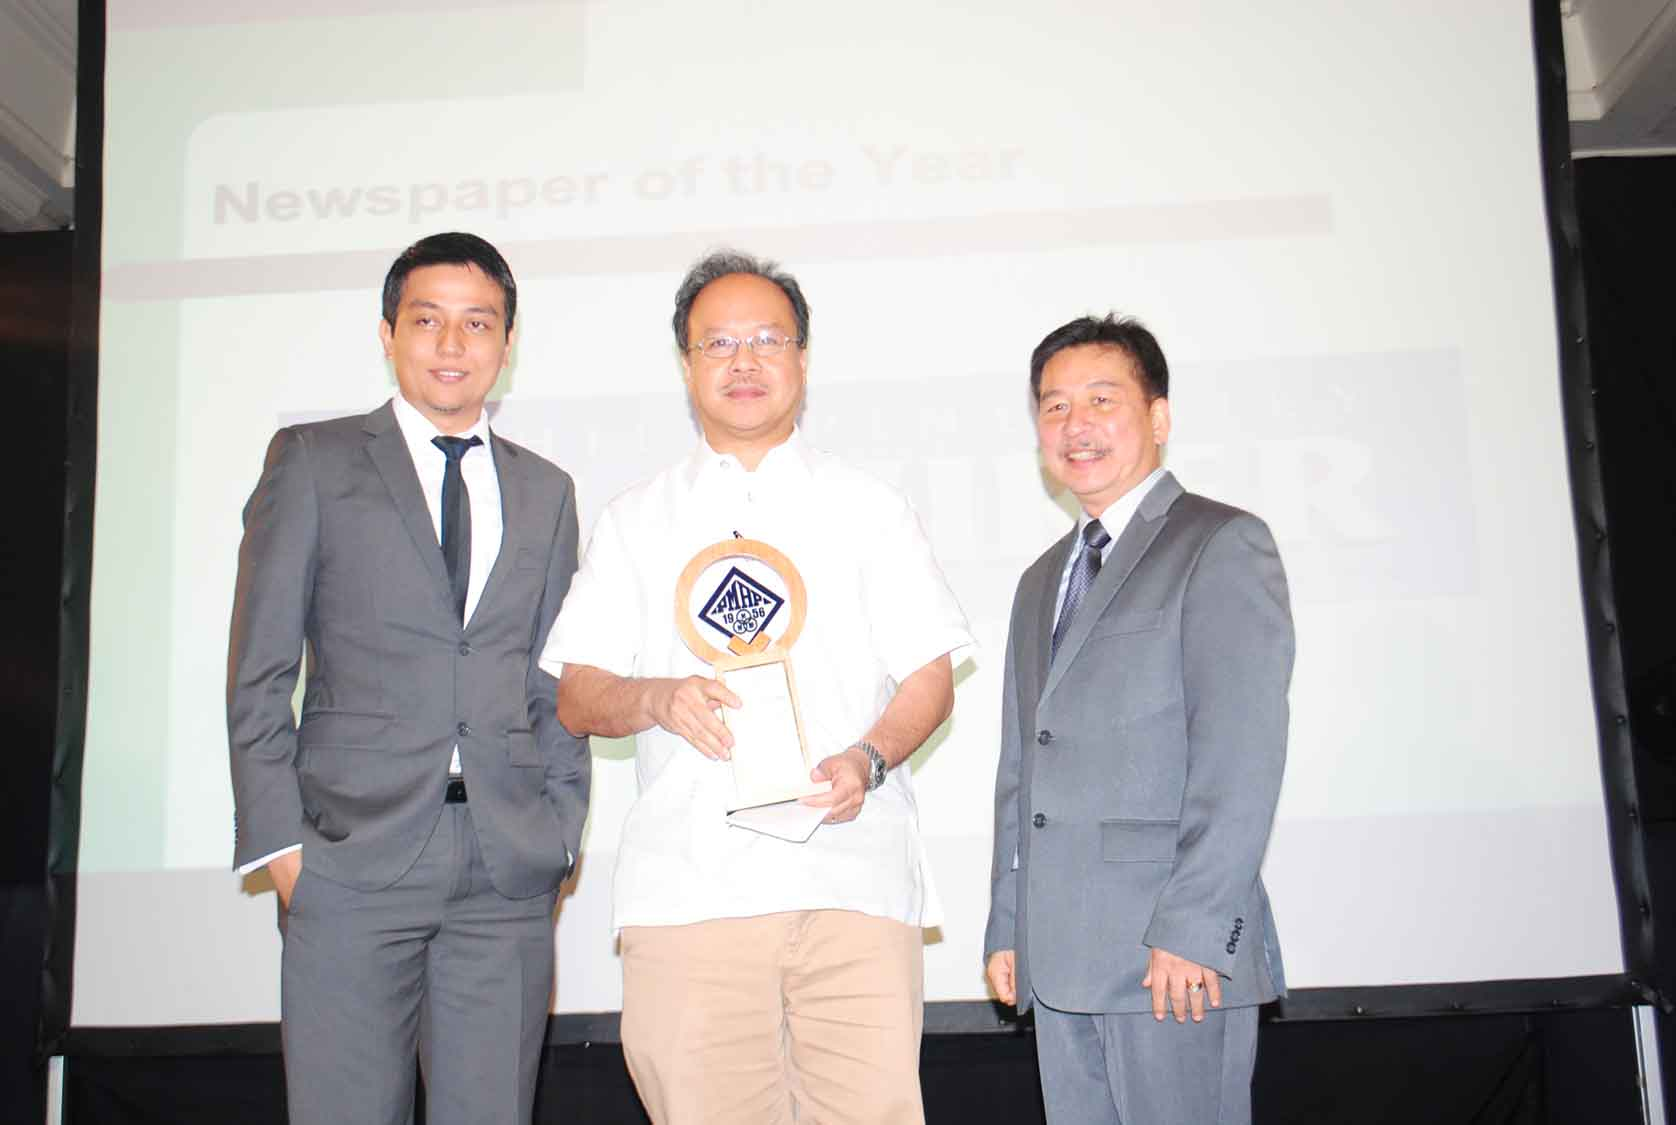 2nd PMAP Makatao Awards for Media Excellence Winners